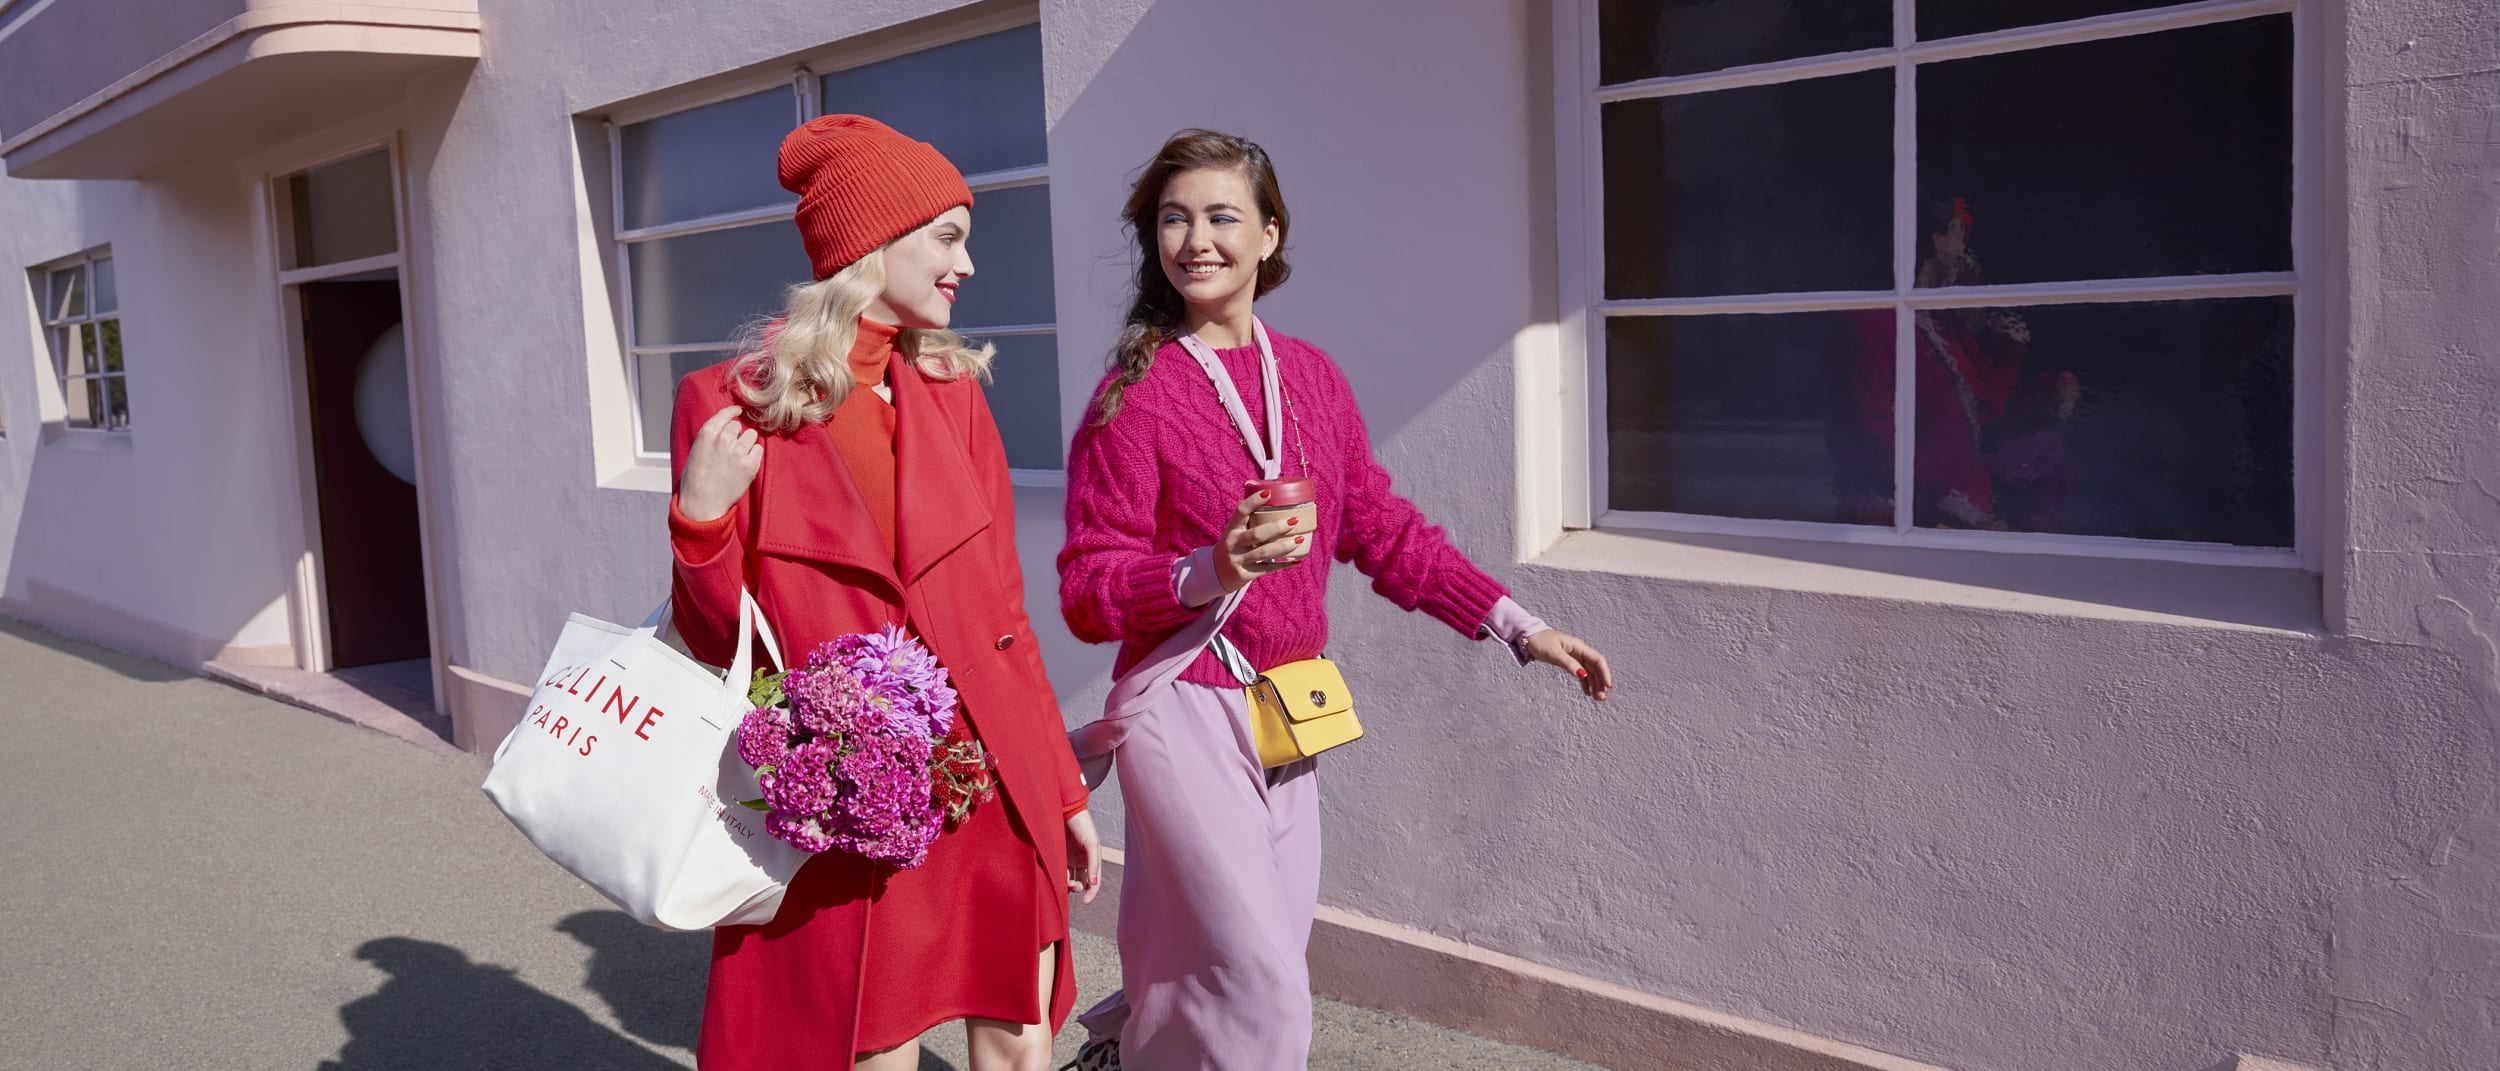 Mix it up: three fashion staples to mix and match in winter